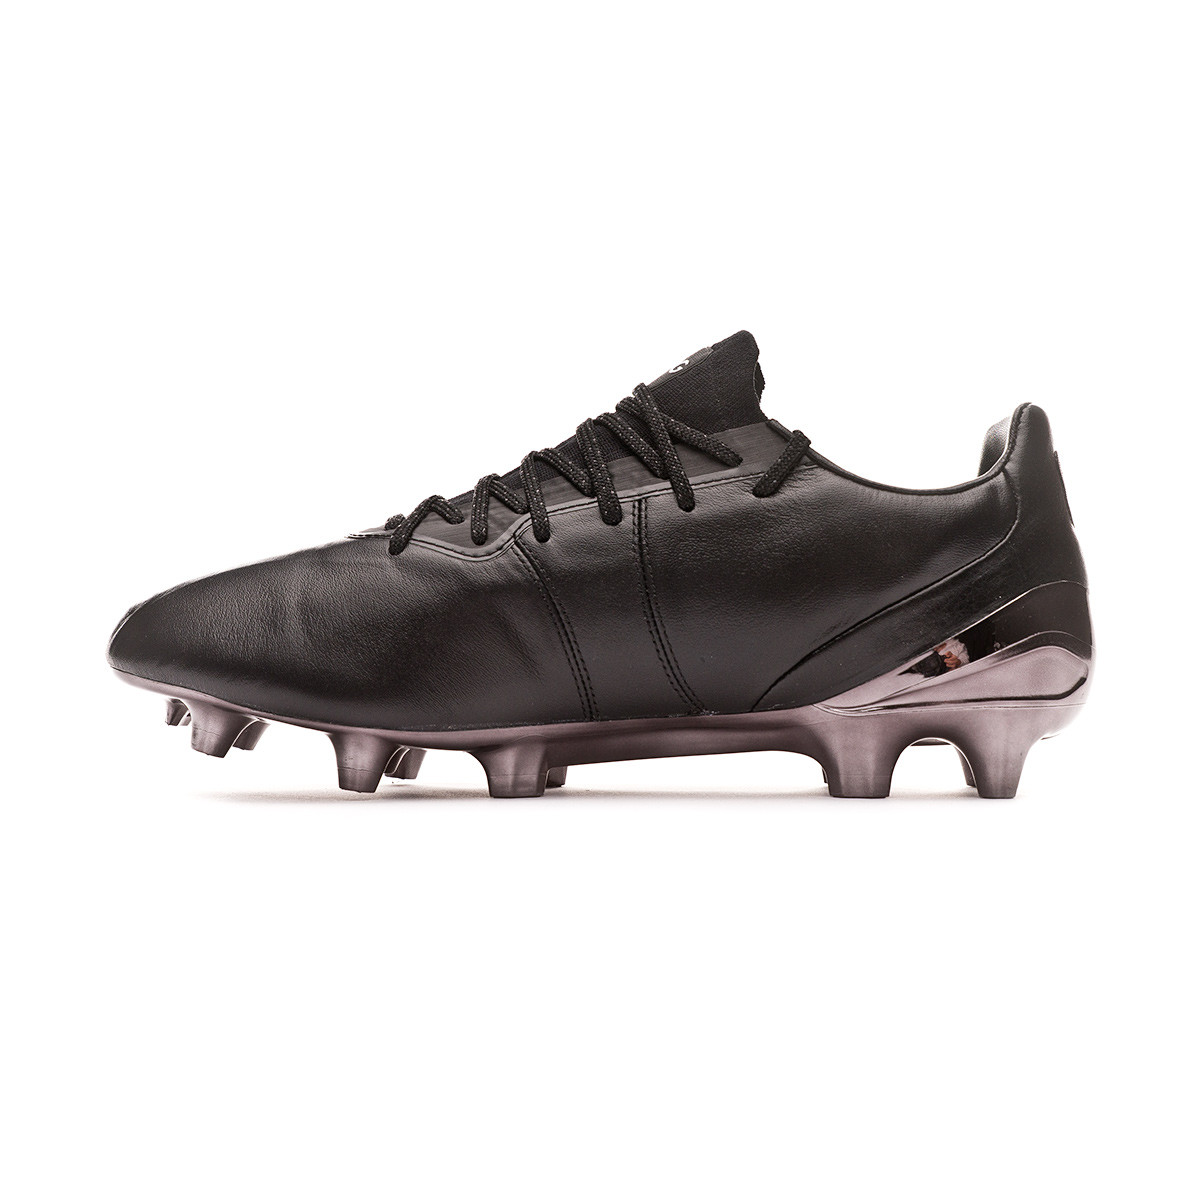 low priced ef082 e01d0 Football Boots Puma King Platinum FG AG Blackout - Nike Mercurial Superfly    Shop Nike Soccer Cleats ypsoccer.com